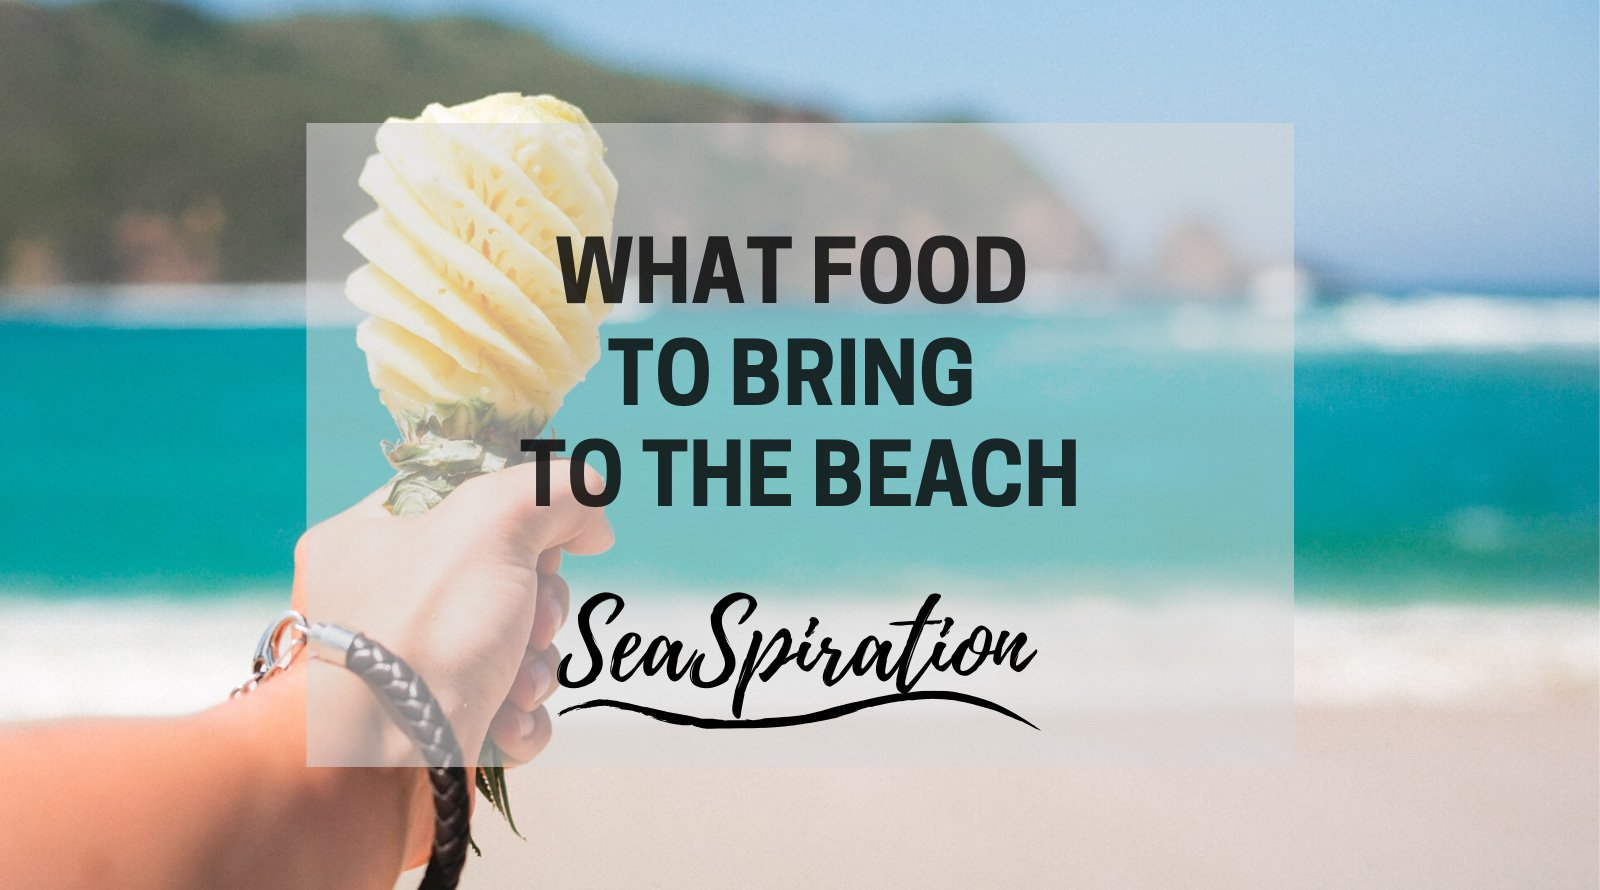 Food to bring to the beach